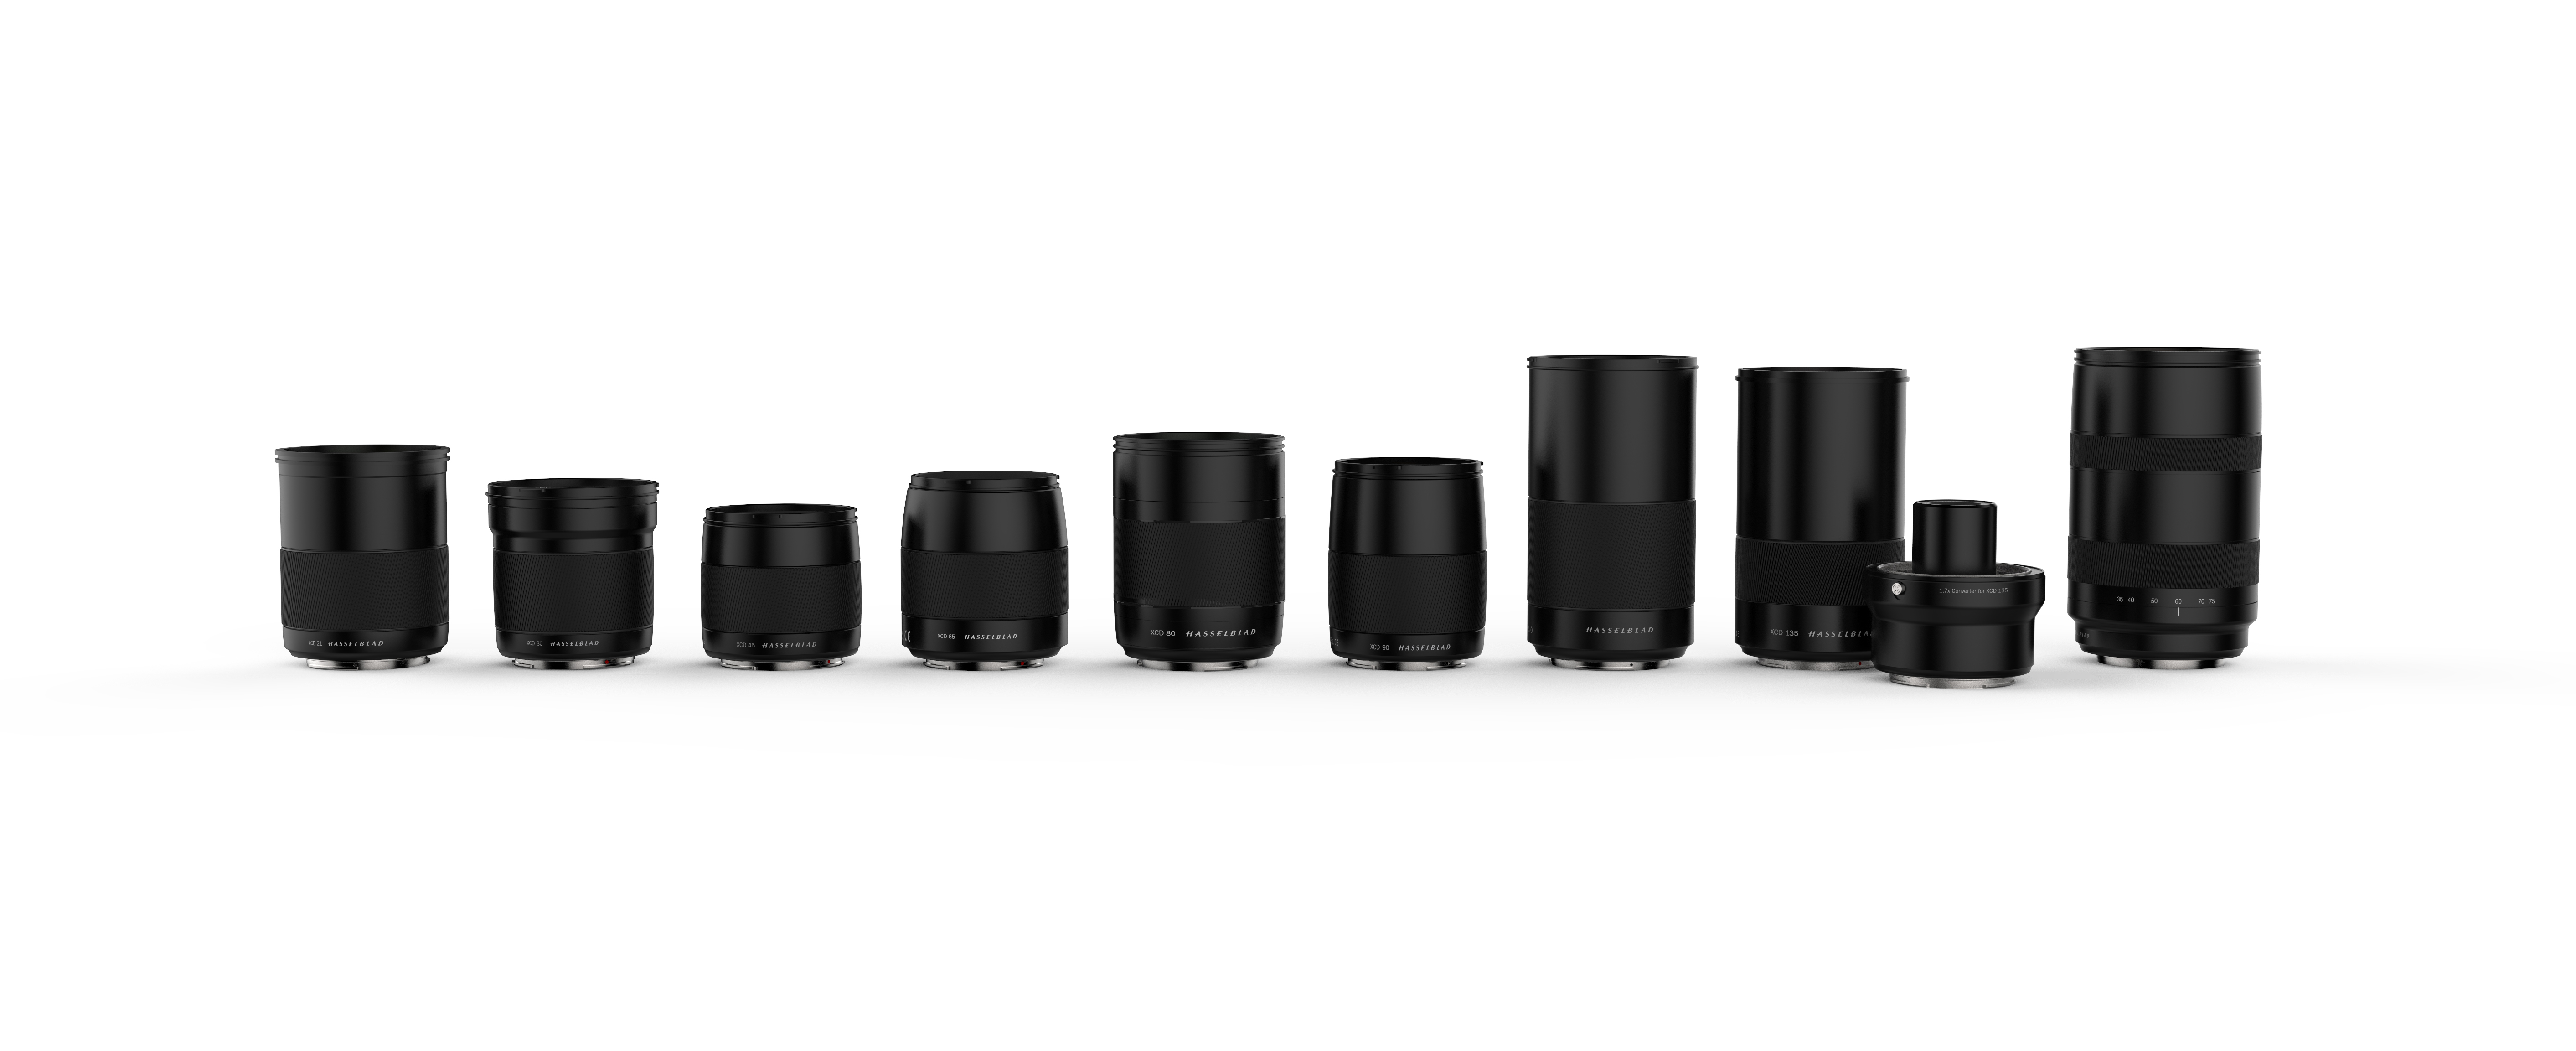 Hasselblad expands the XCD lens range to a total of nine